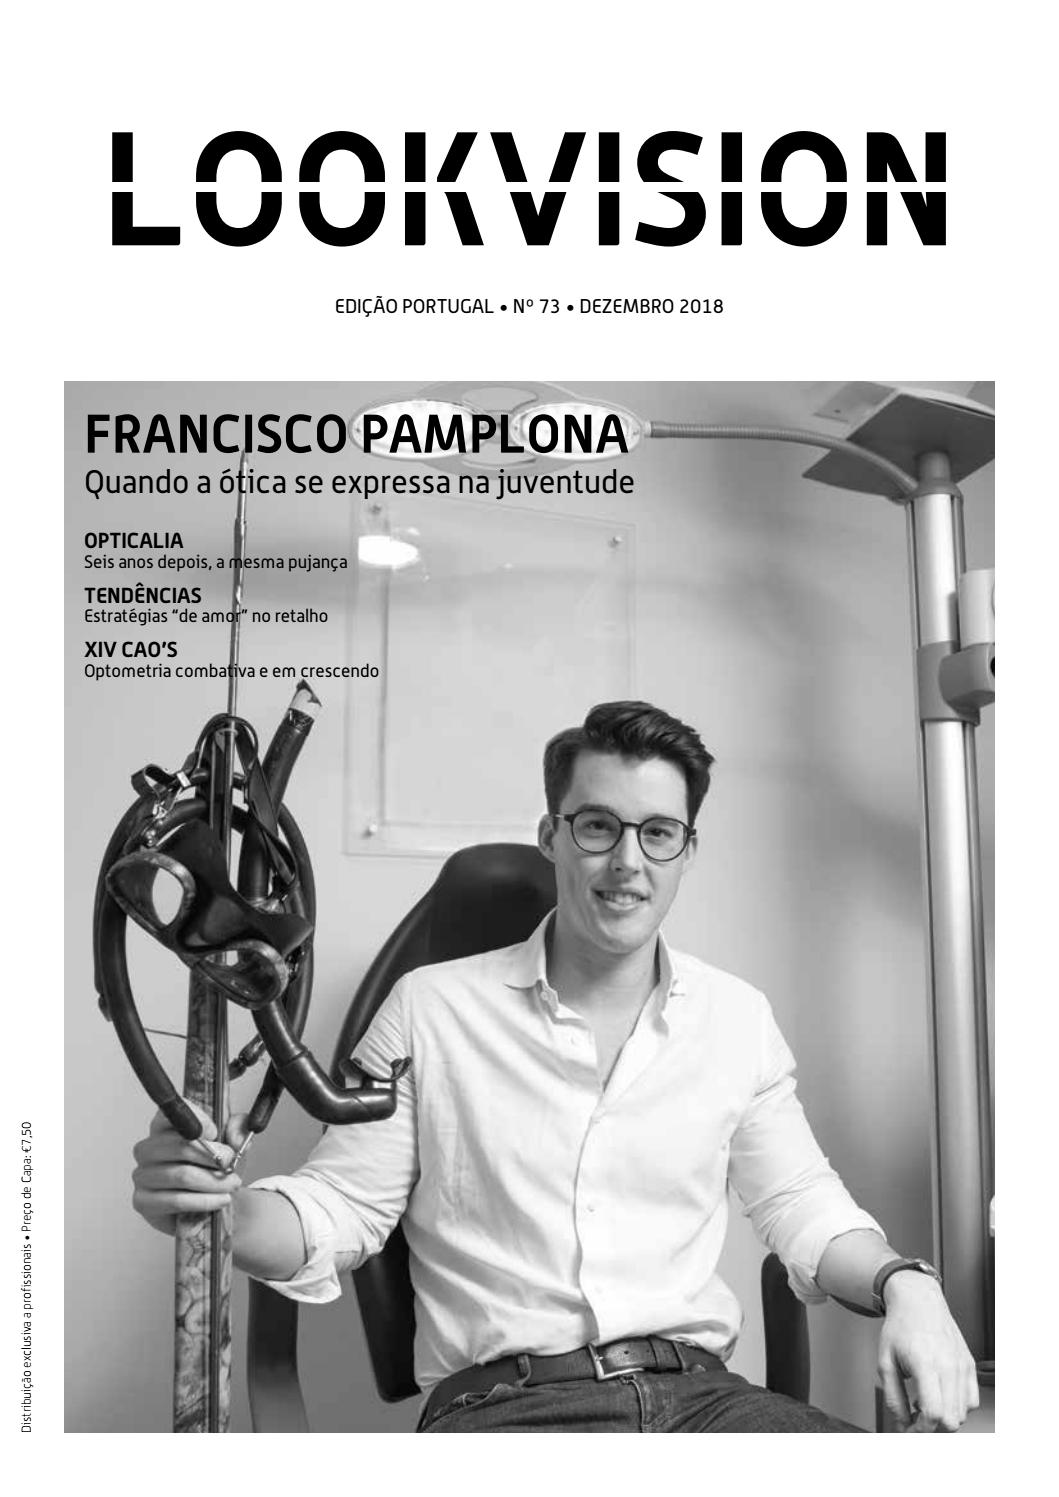 45d075f6f LookVision Portugal 73 by LookVision Portugal - issuu